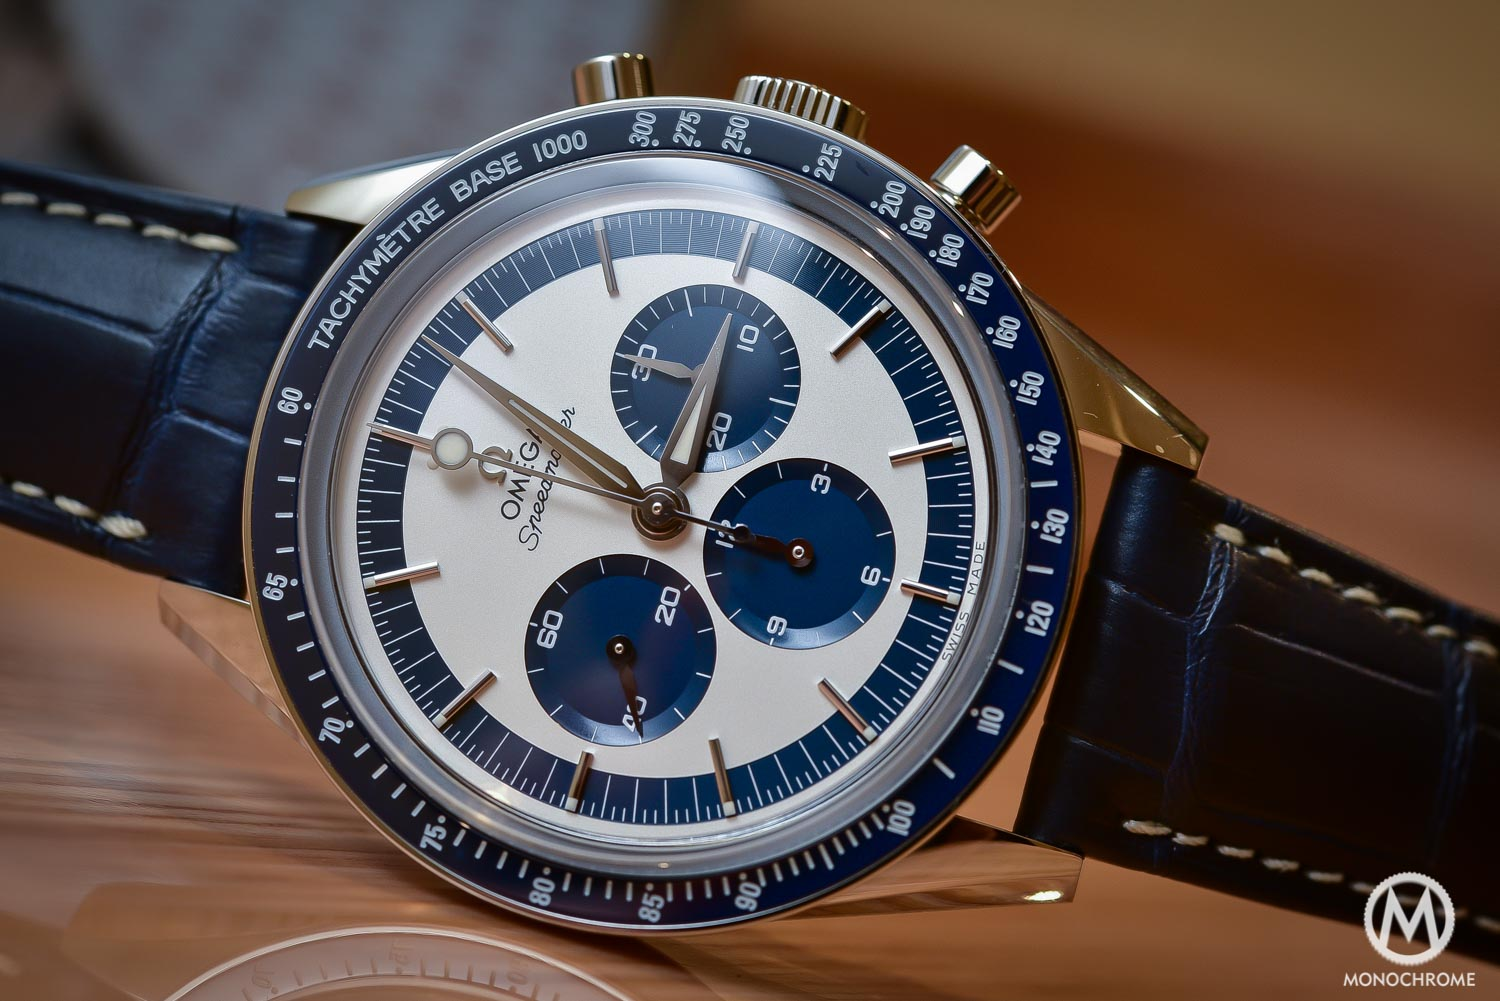 OMEGA Speedmaster CK2998 Limited Edition lollipop blue panda - Baselworld 2016 - 2